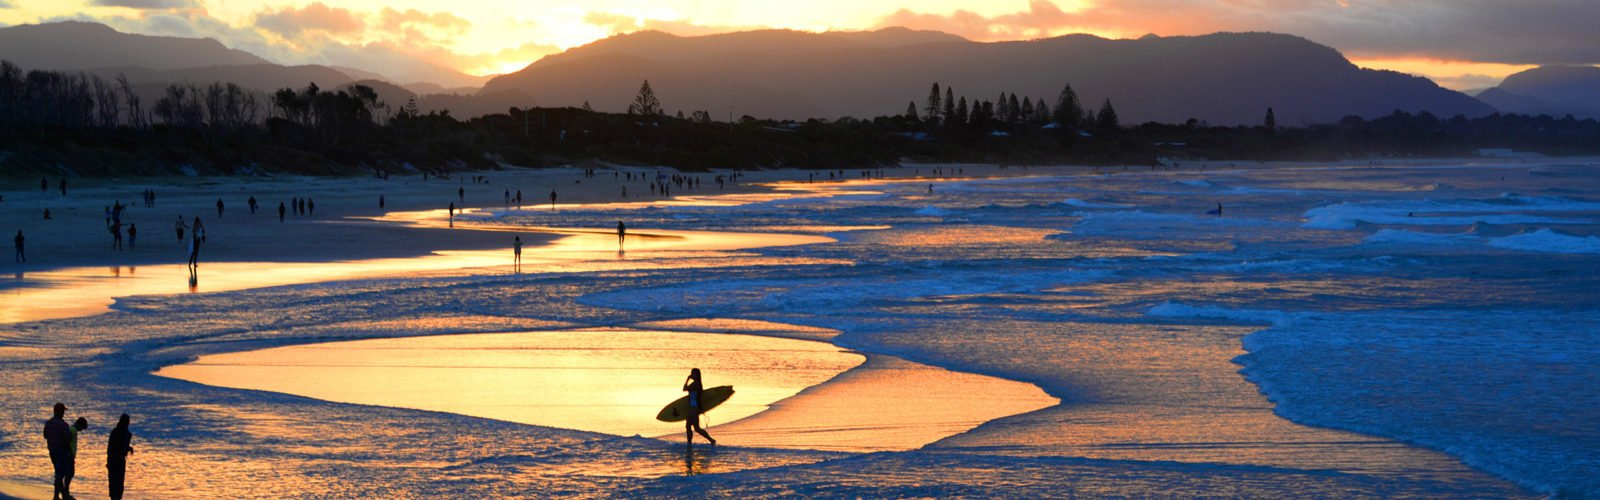 Surfing South Africa